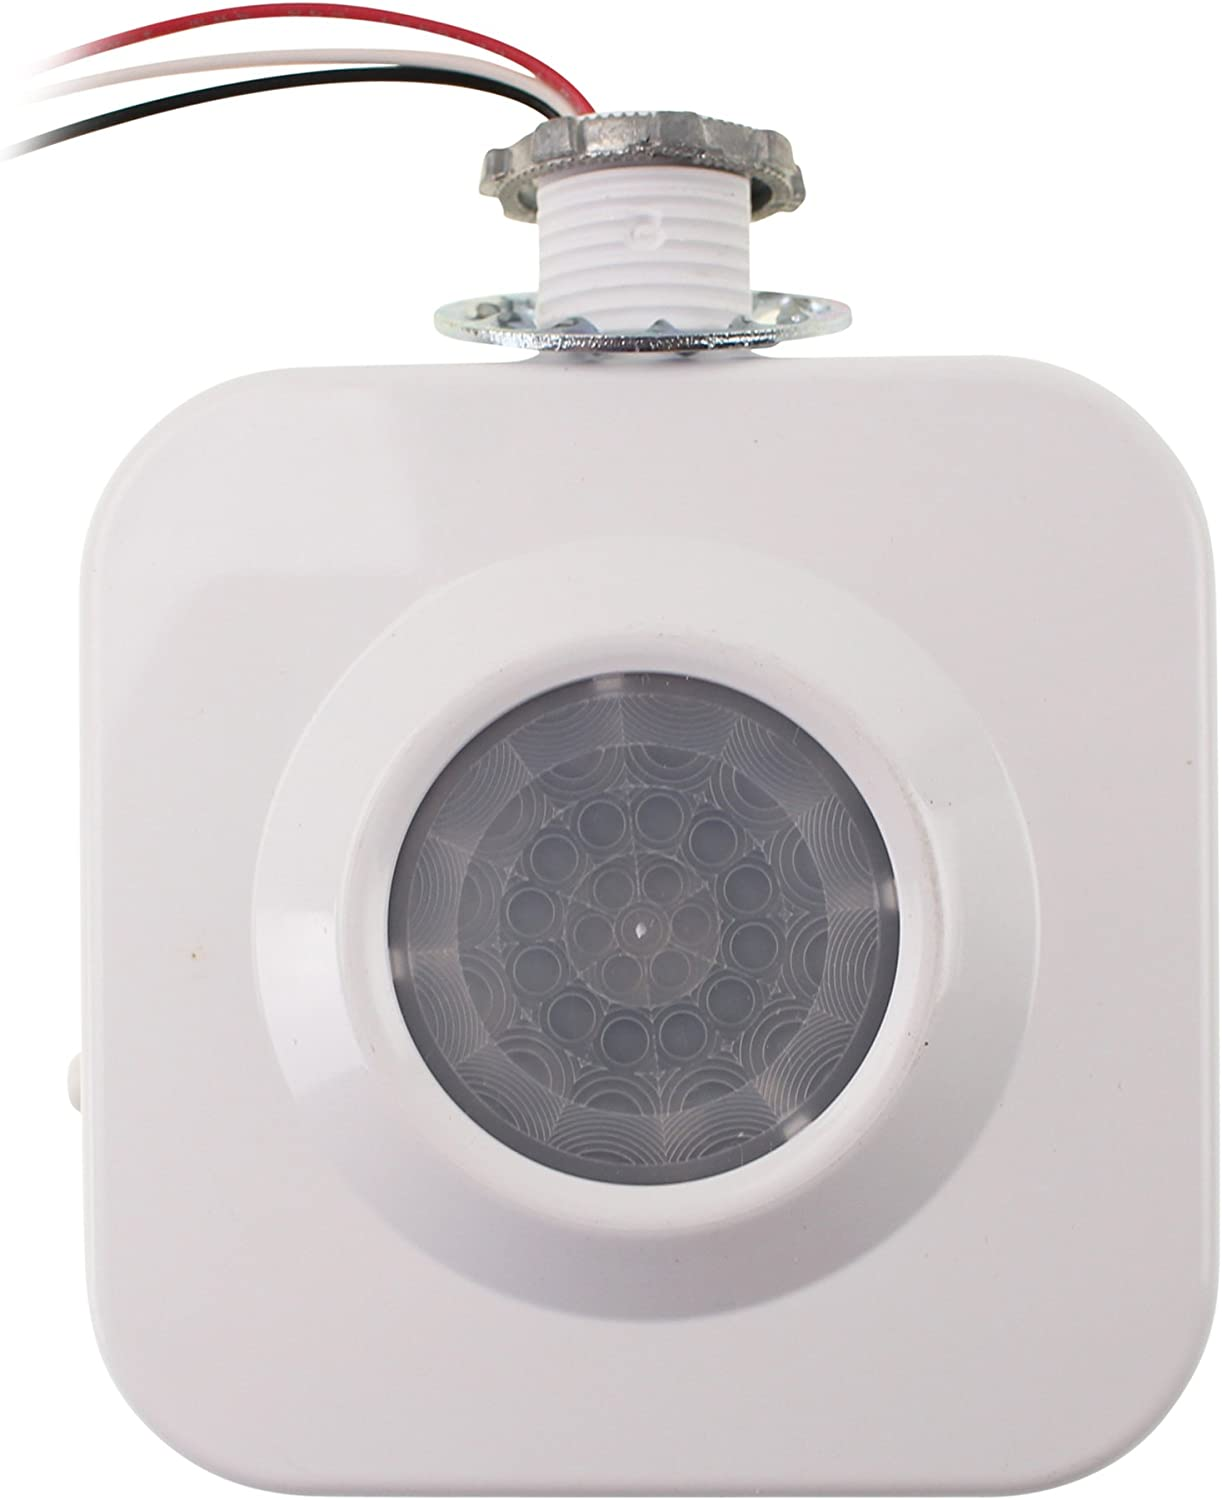 12V 360/° Infrared PIR Motion Sensor Switch with Time Delay for Corridors//Bathrooms//Basements//Garages